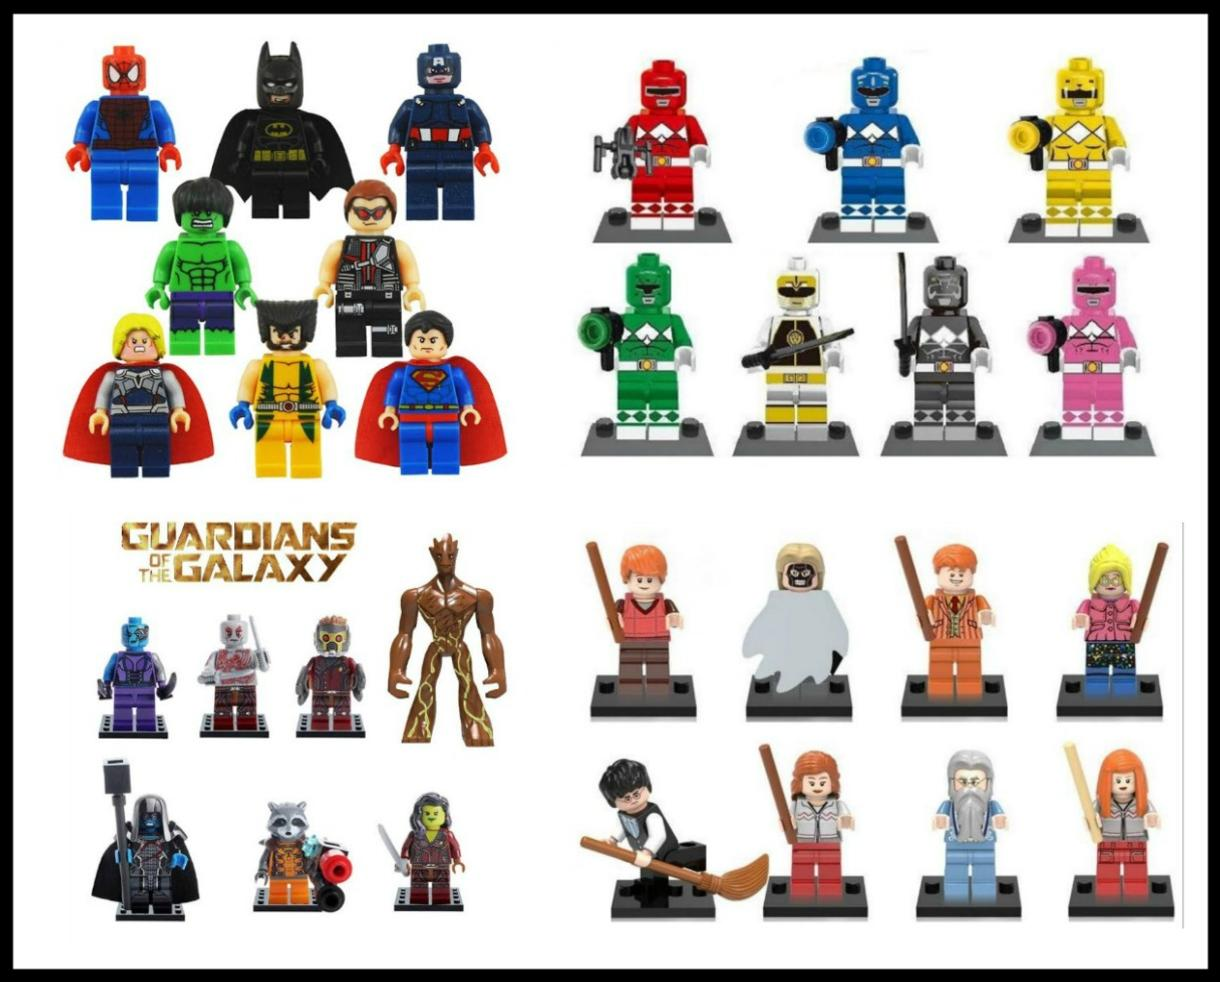 $5 for Minifigures Two Pack OR $18 for Complete Set - Batman, Guardians of the Galaxy, Super Heroes, Star Wars, Harry Potter and More! (Up to 56% Off)